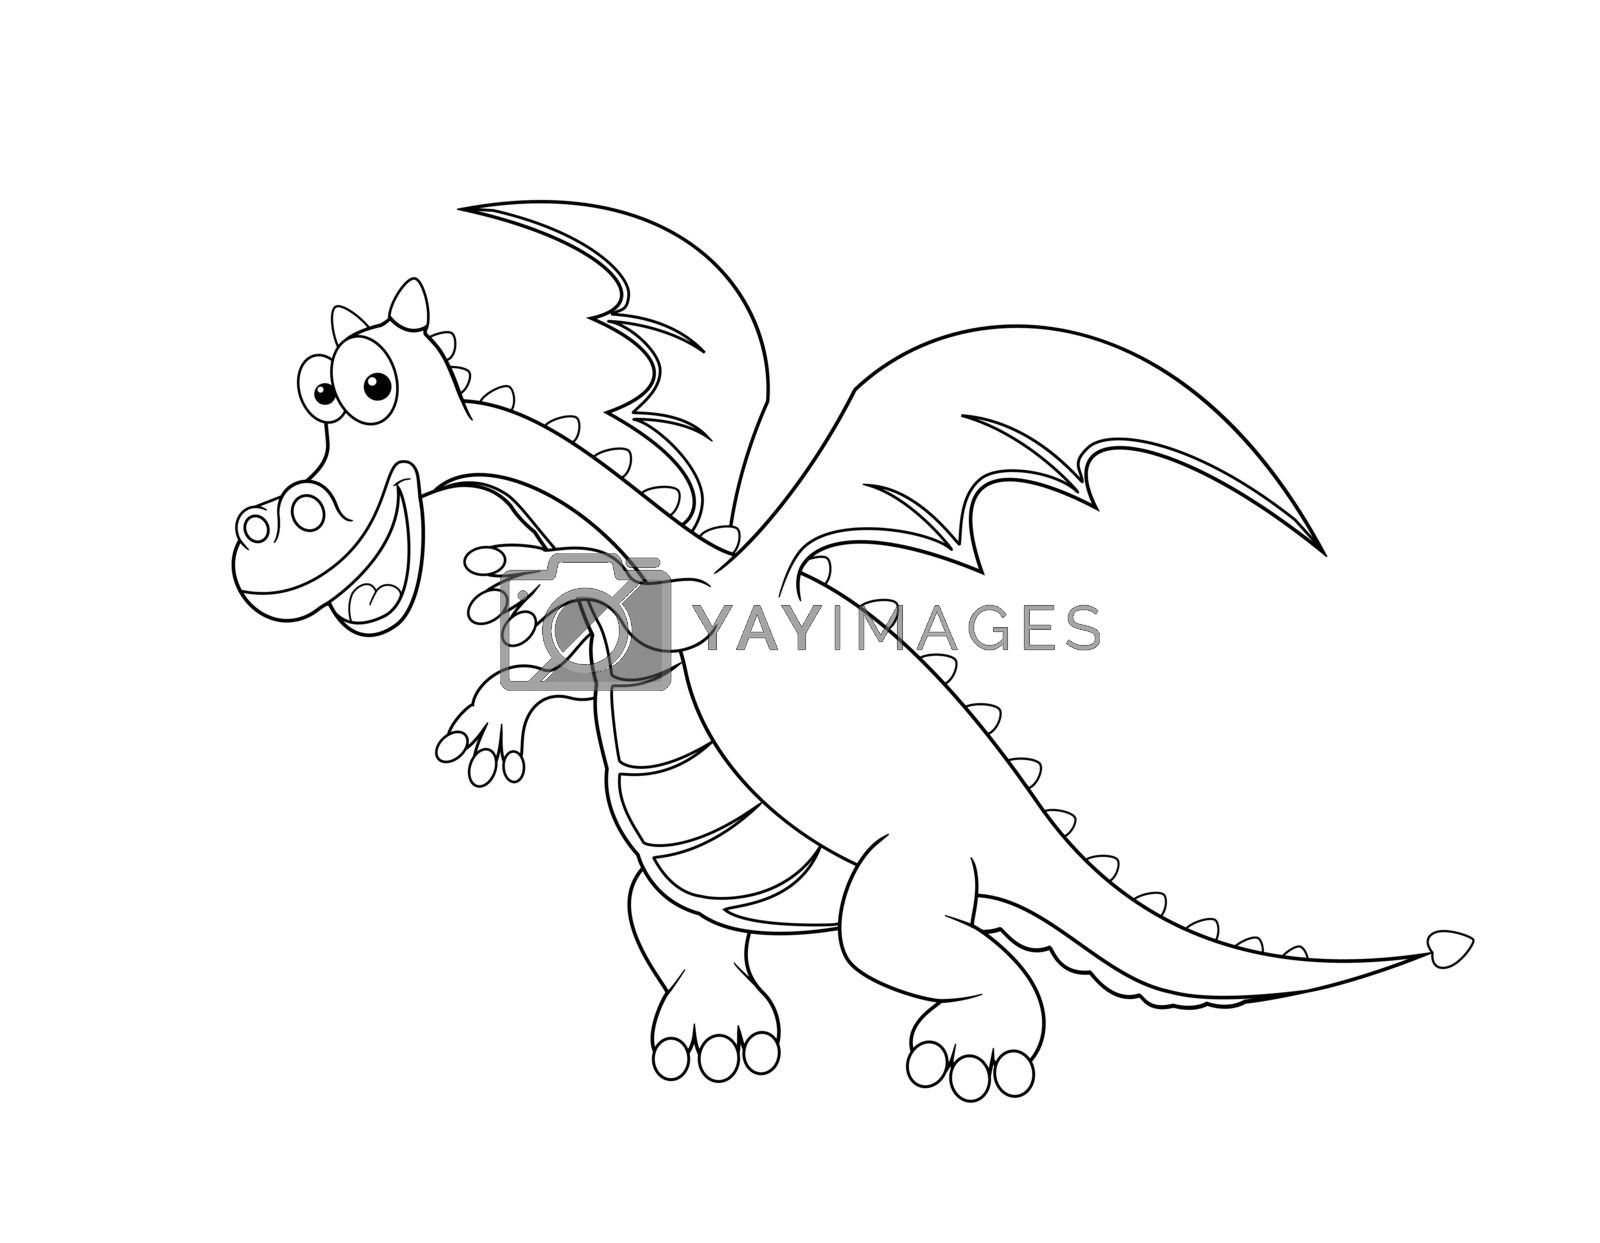 Dragon outline in black on a white background.